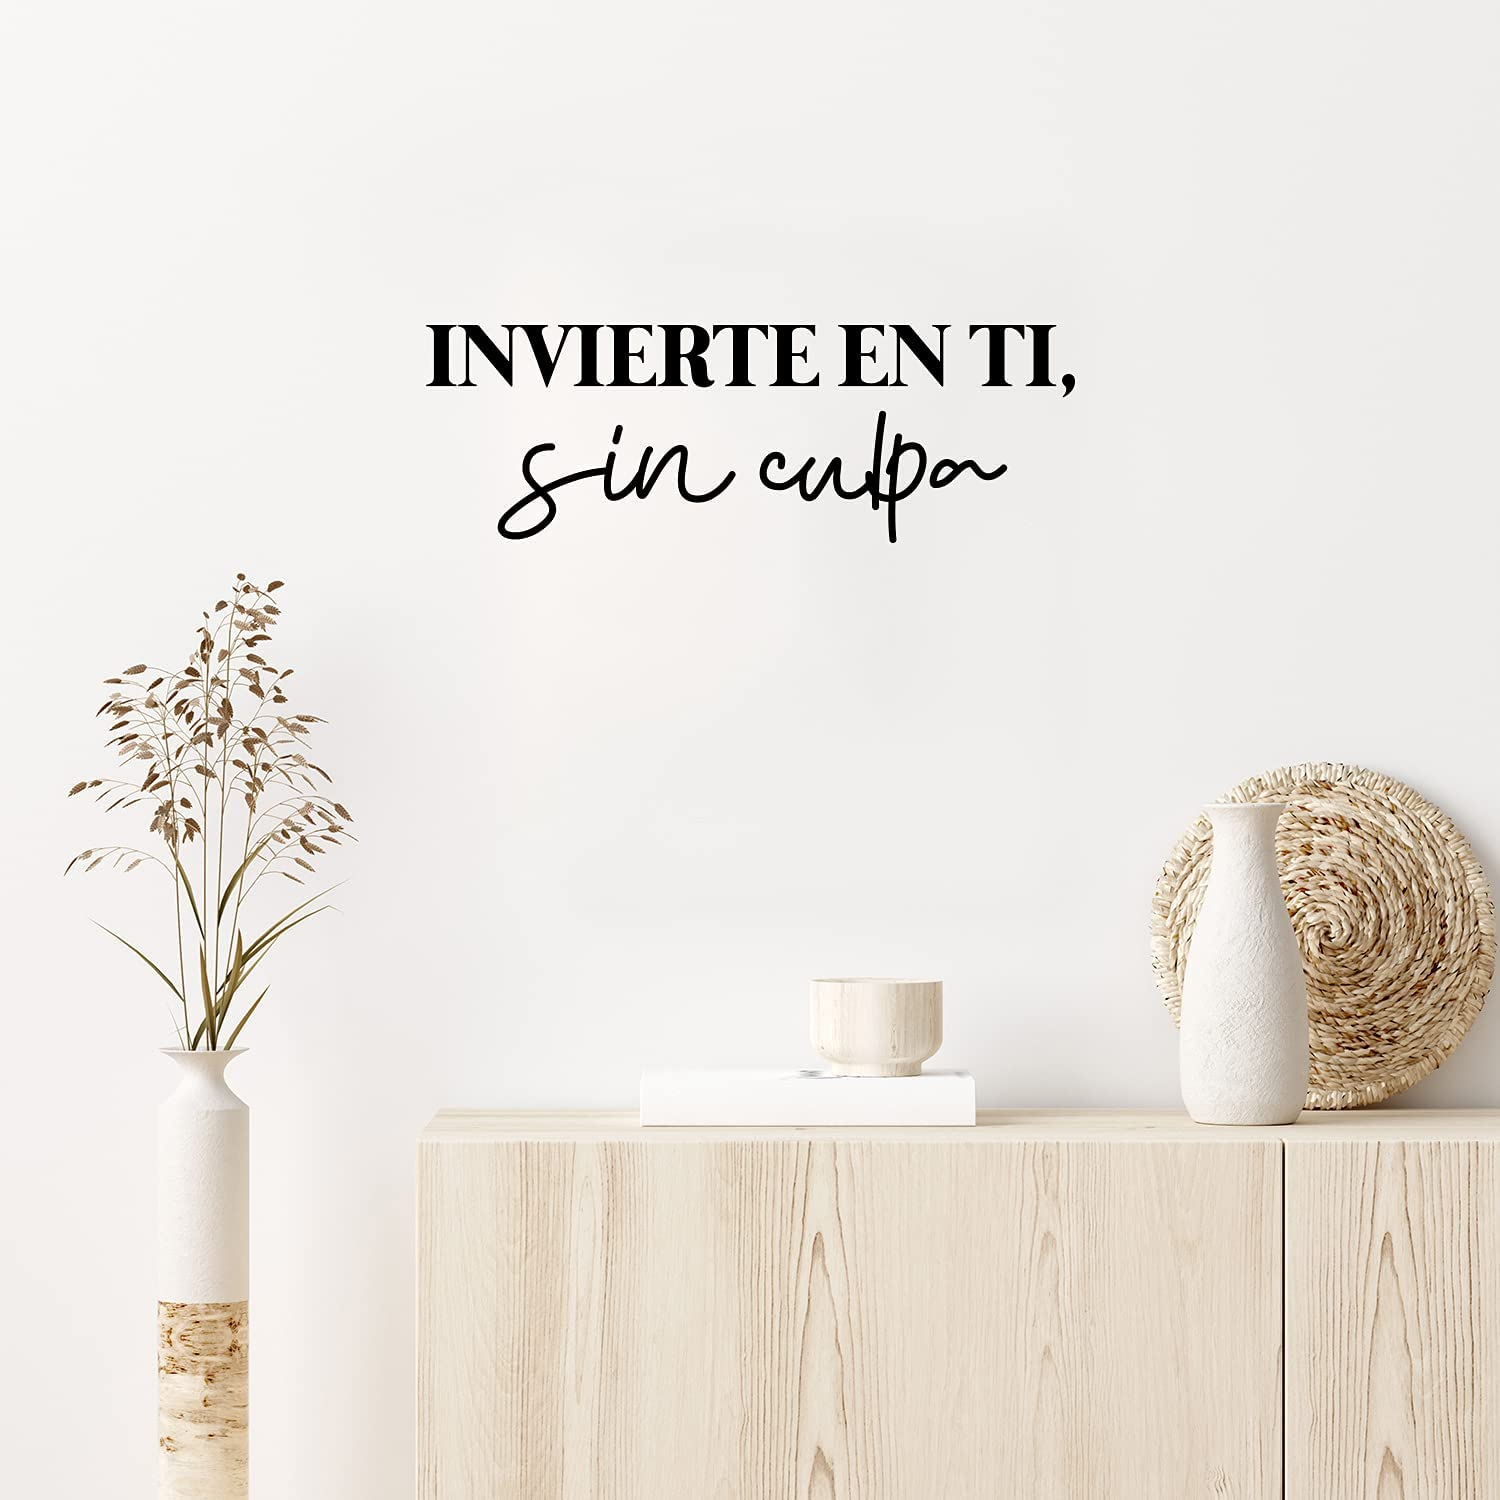 Vinyl Wall Art Decal - Invierte En Ti, Sin Culpa / Invest in You, Without Guilt - 8.5